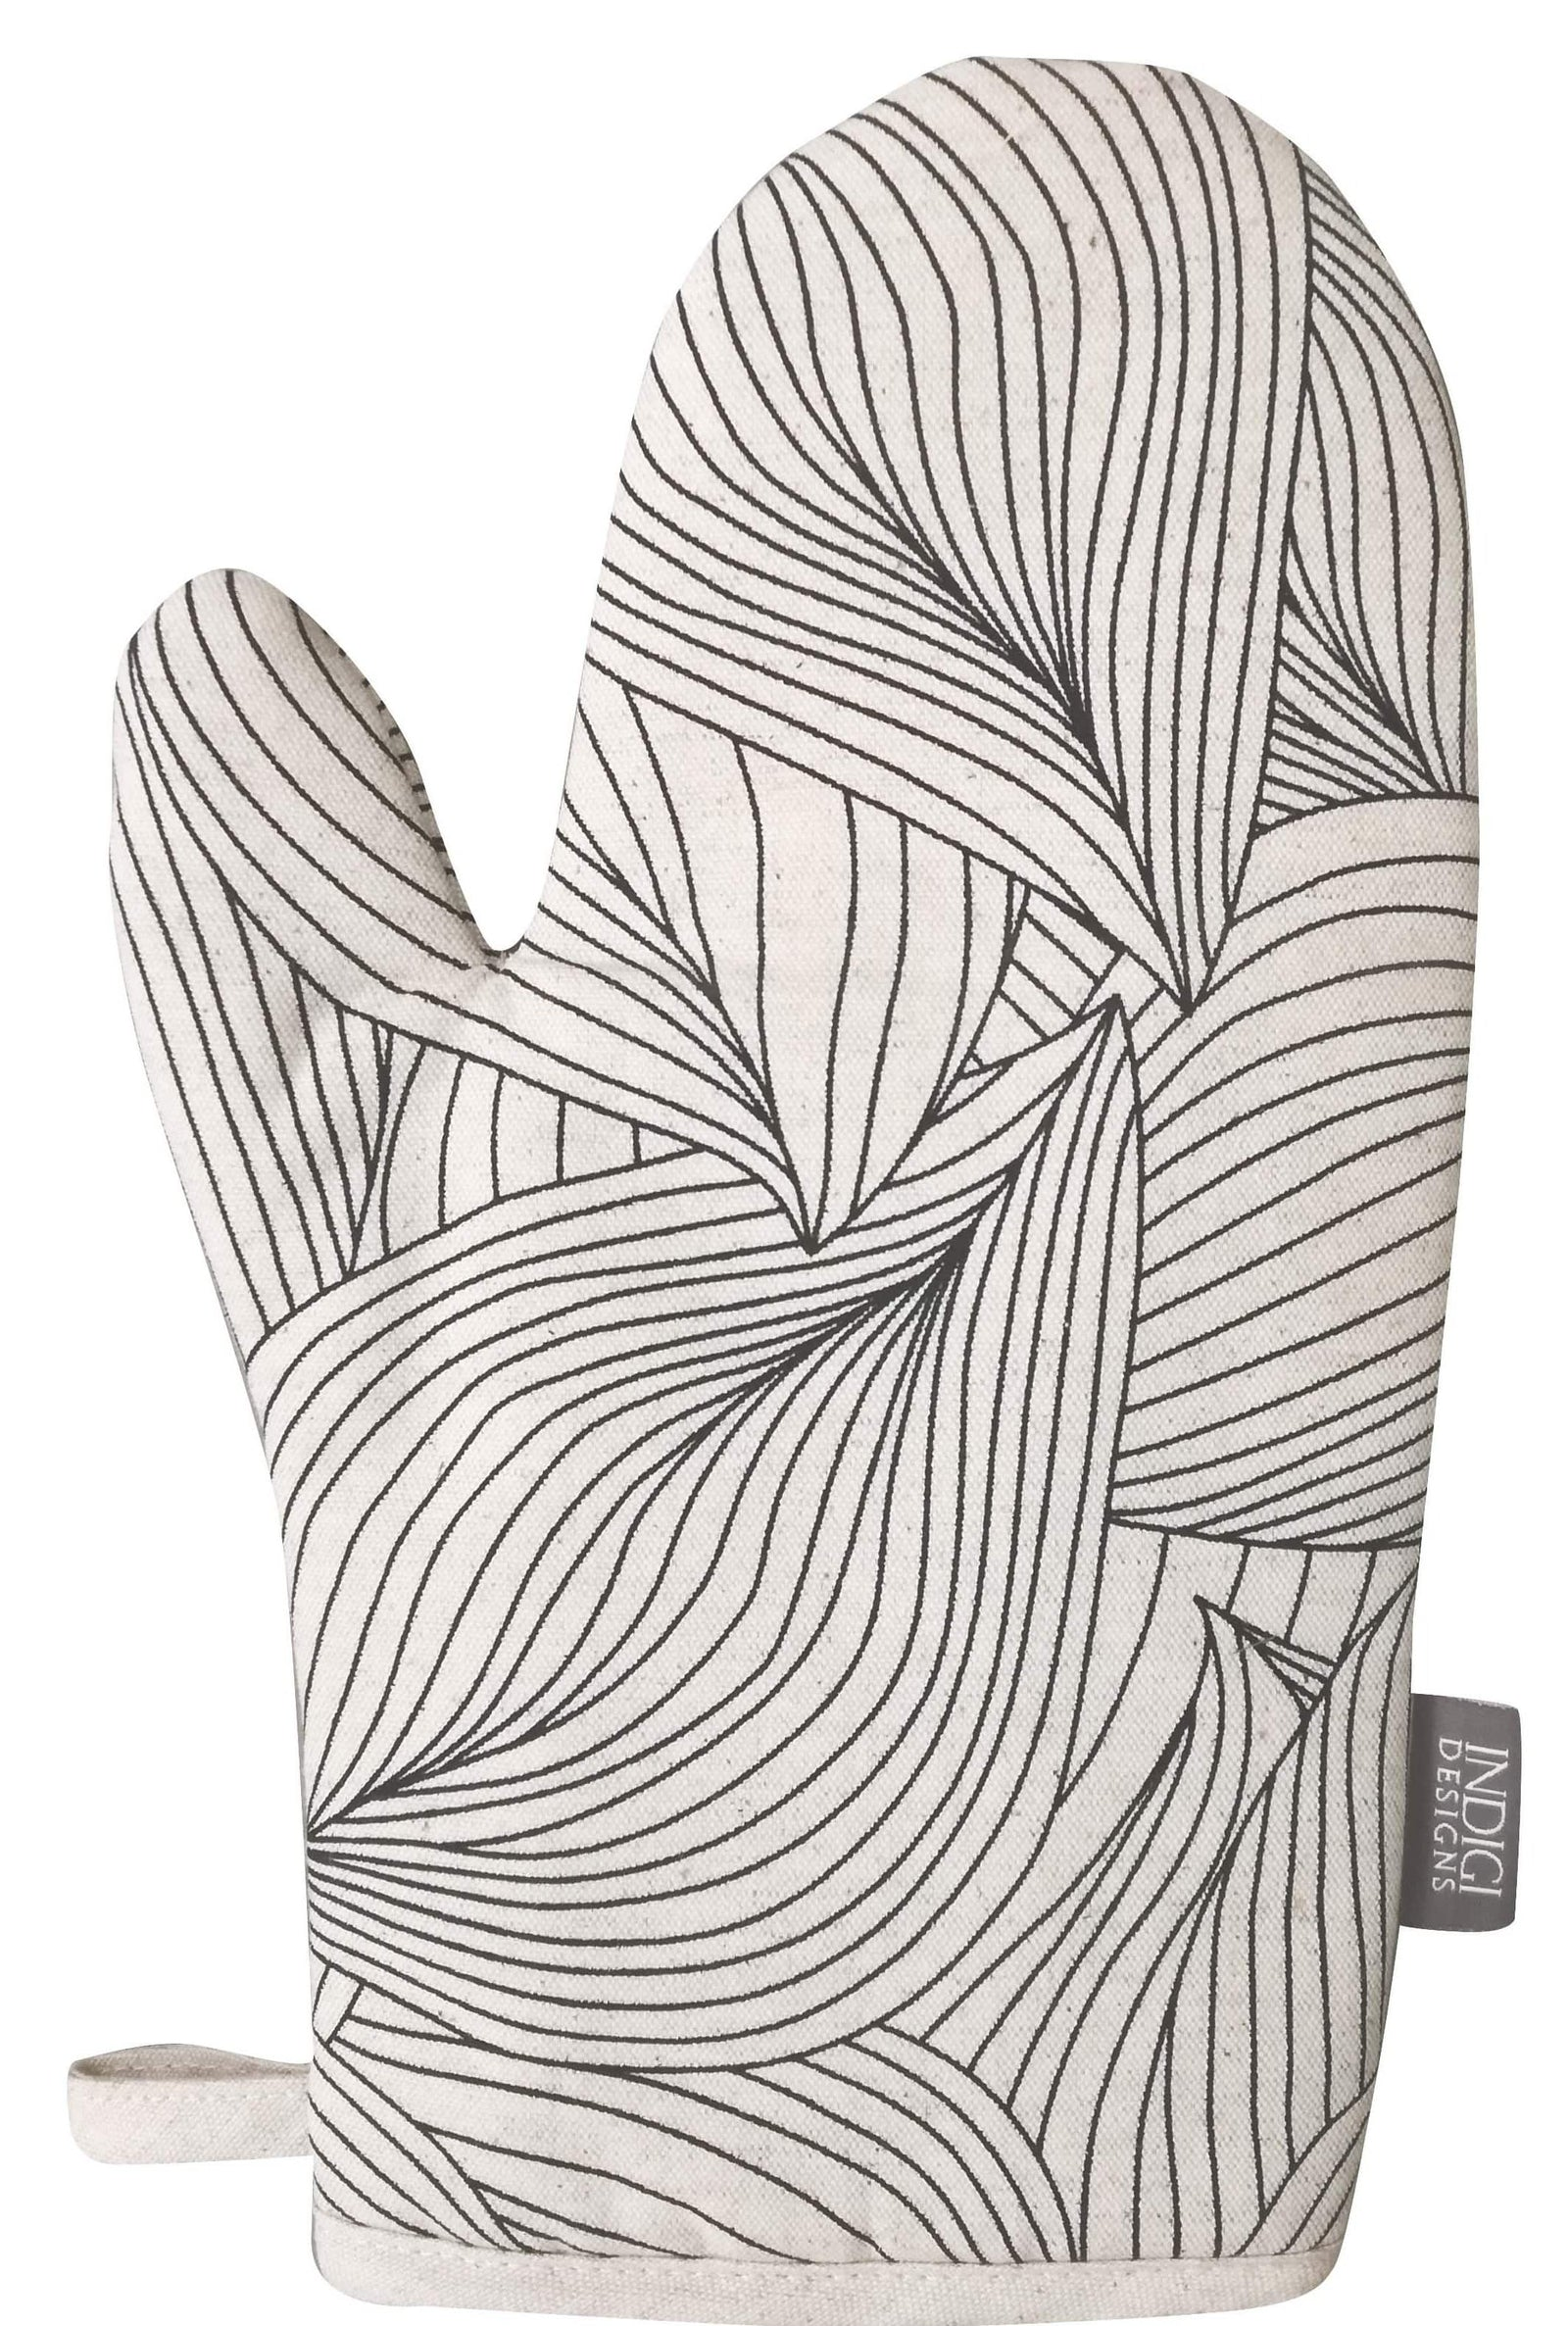 Lilium Charcoal Oven Glove